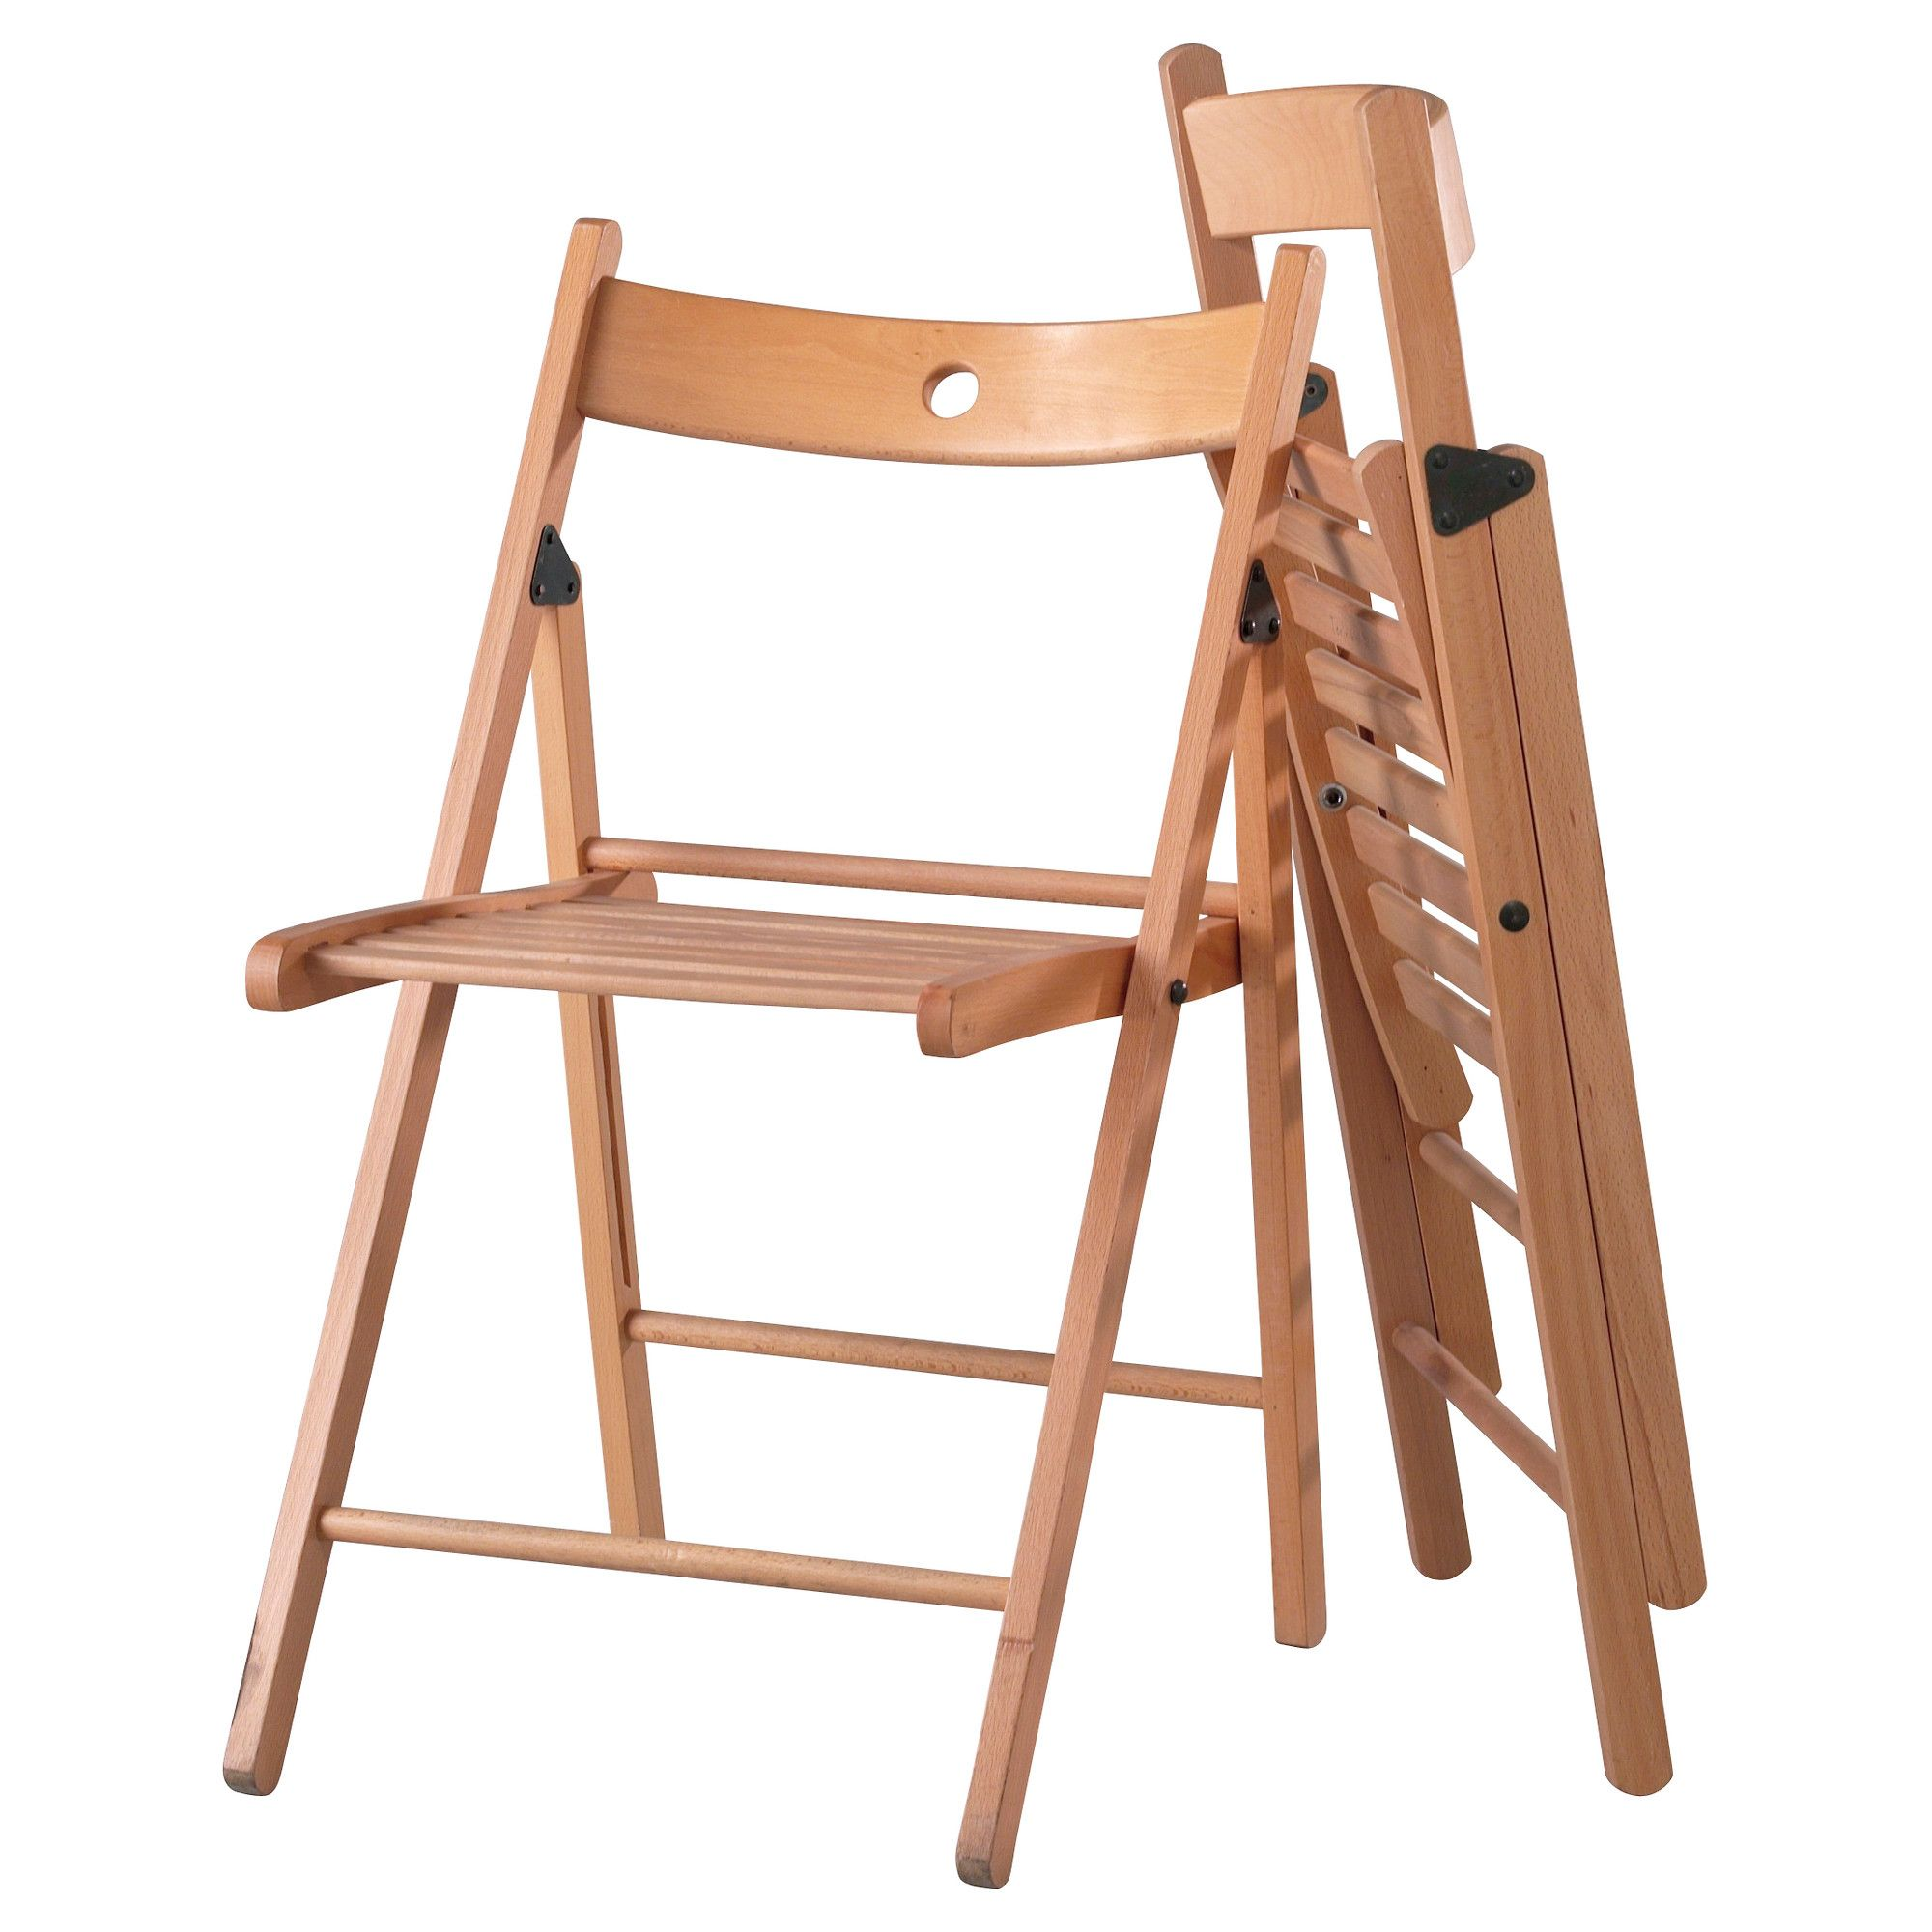 TERJE Folding chair Beech